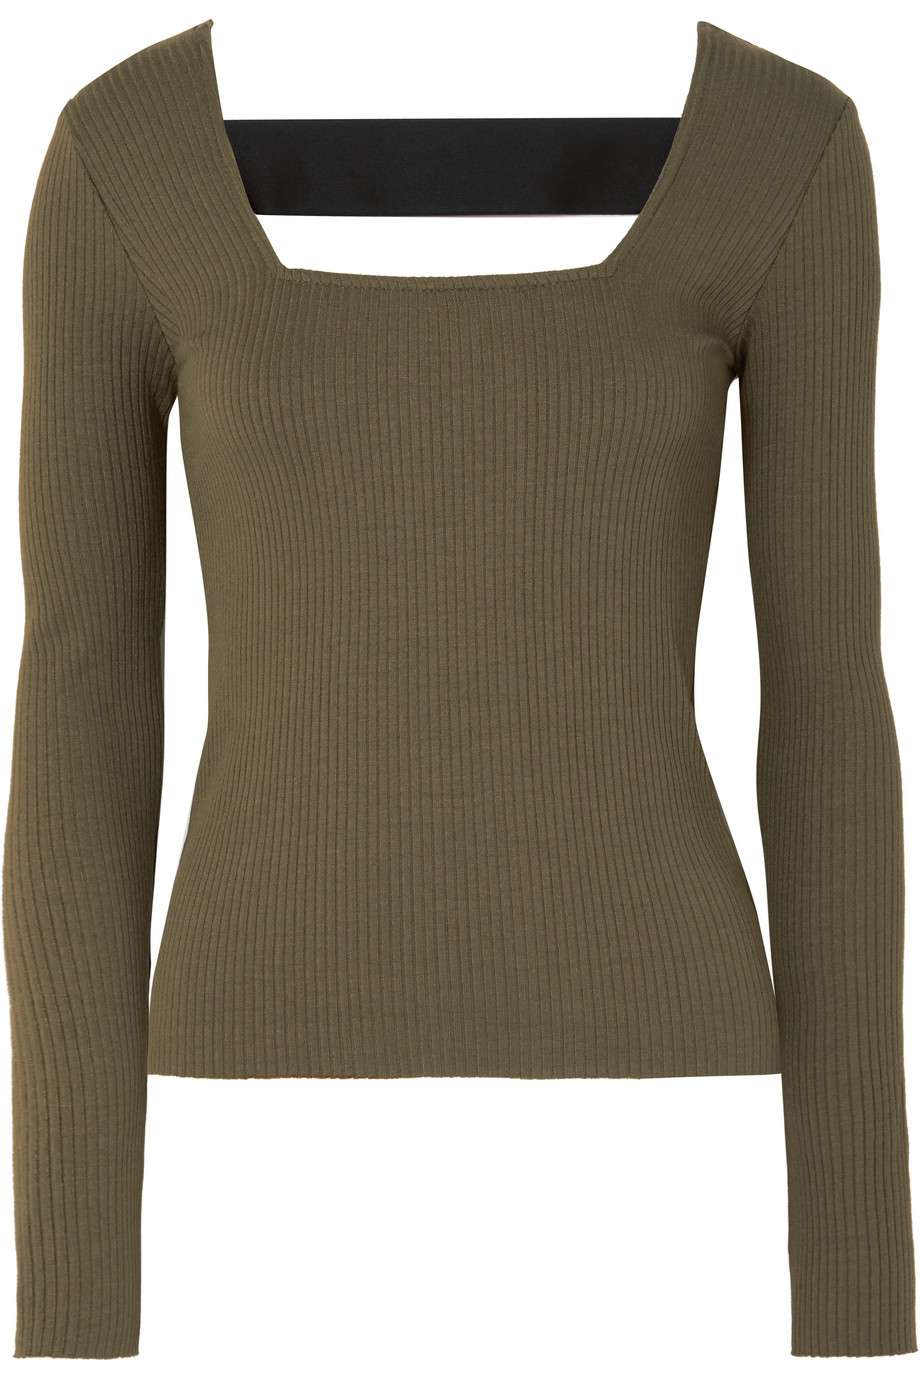 green long sleeve top